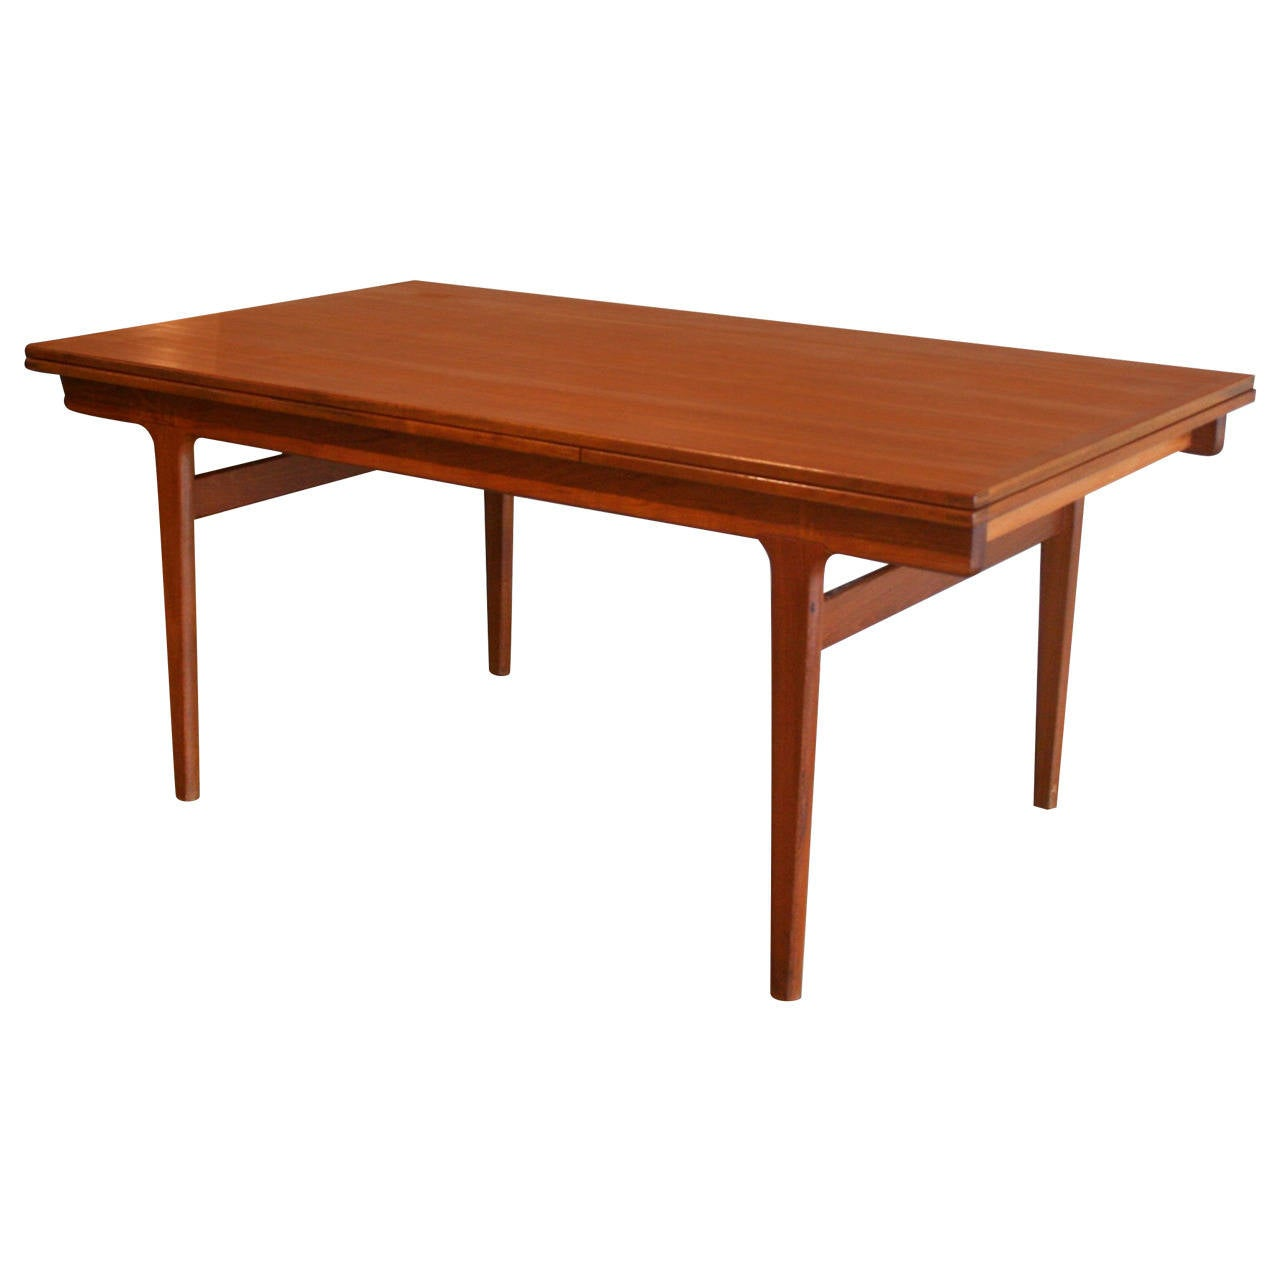 2306362 - Classic dining room tables ...